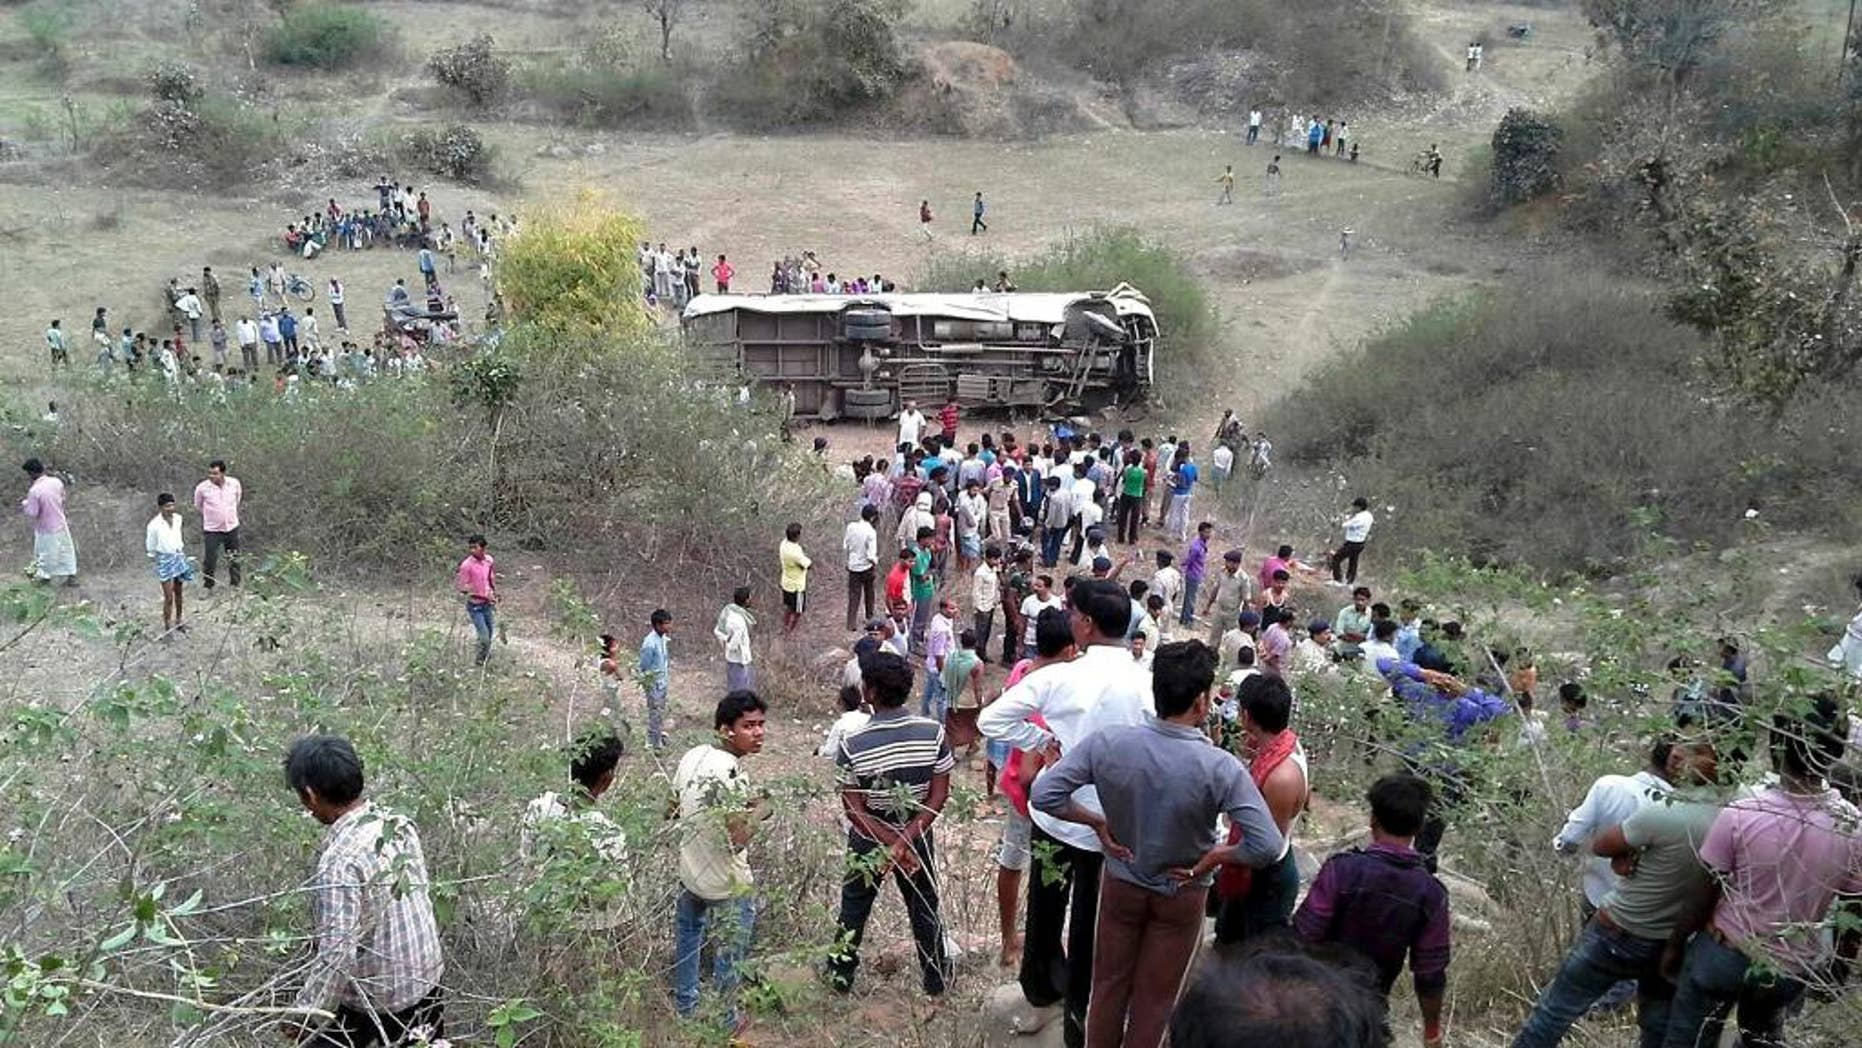 Indians gather near a passenger bus that overturned after it plunged into a gorge, in Garhwa district of Jharkhand state, India, Monday, March 30, 2015. The accident happened after the bus driver lost control of his vehicle on a sharp curve on a mountain road. The bus was traveling from Raipur city to the neighboring state of Bihar when the accident occurred.(AP Photo)